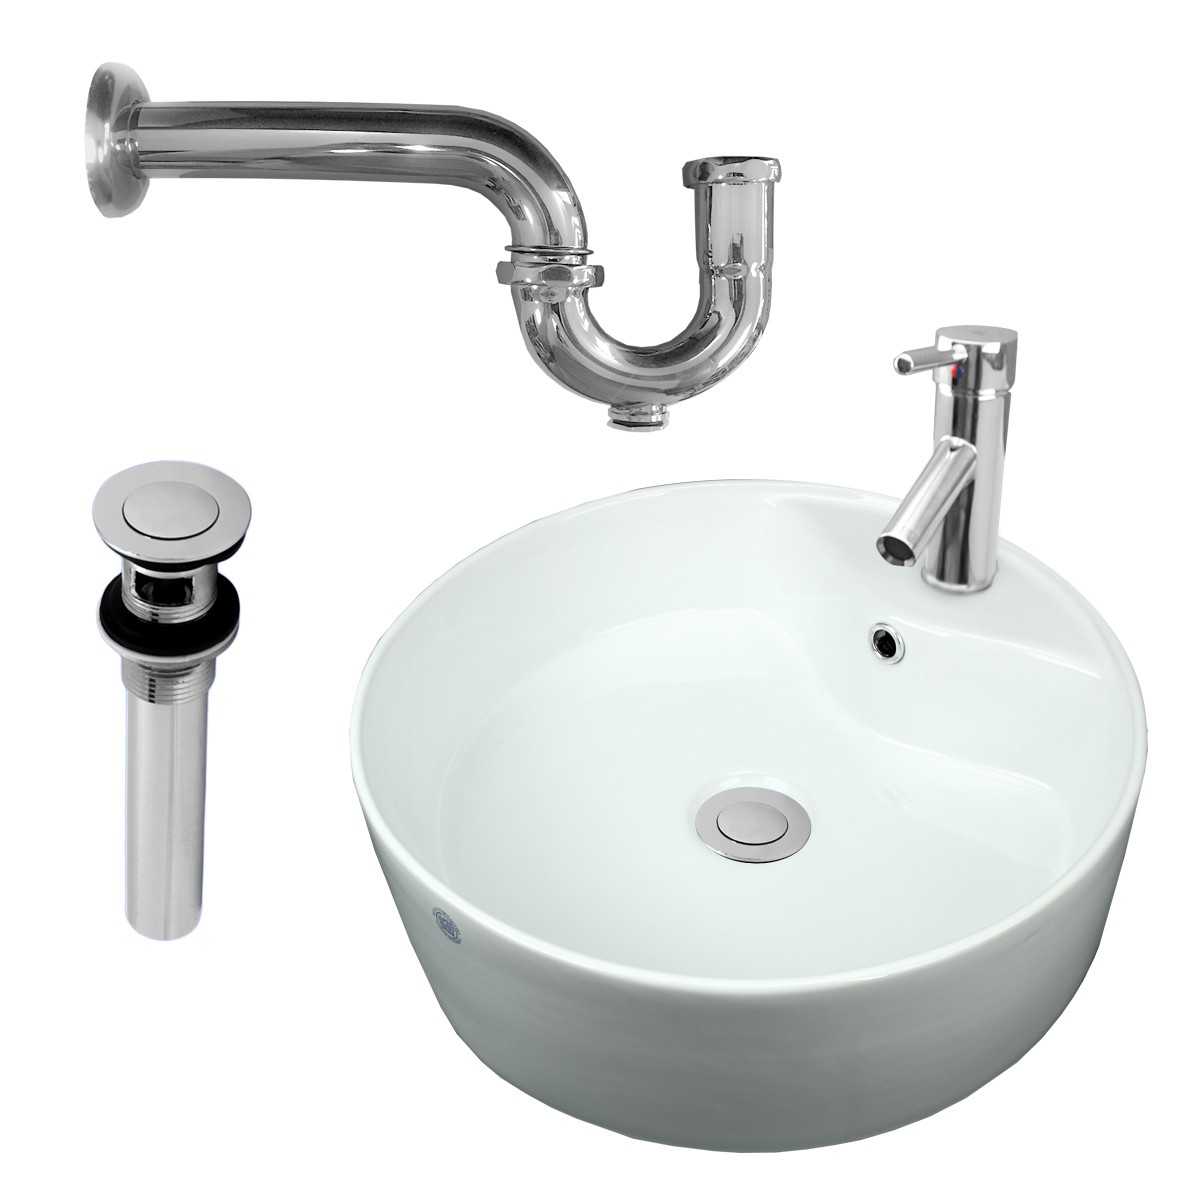 p trap bathroom sink bathroom vessel sink faucet p trap drain incl reno 19840